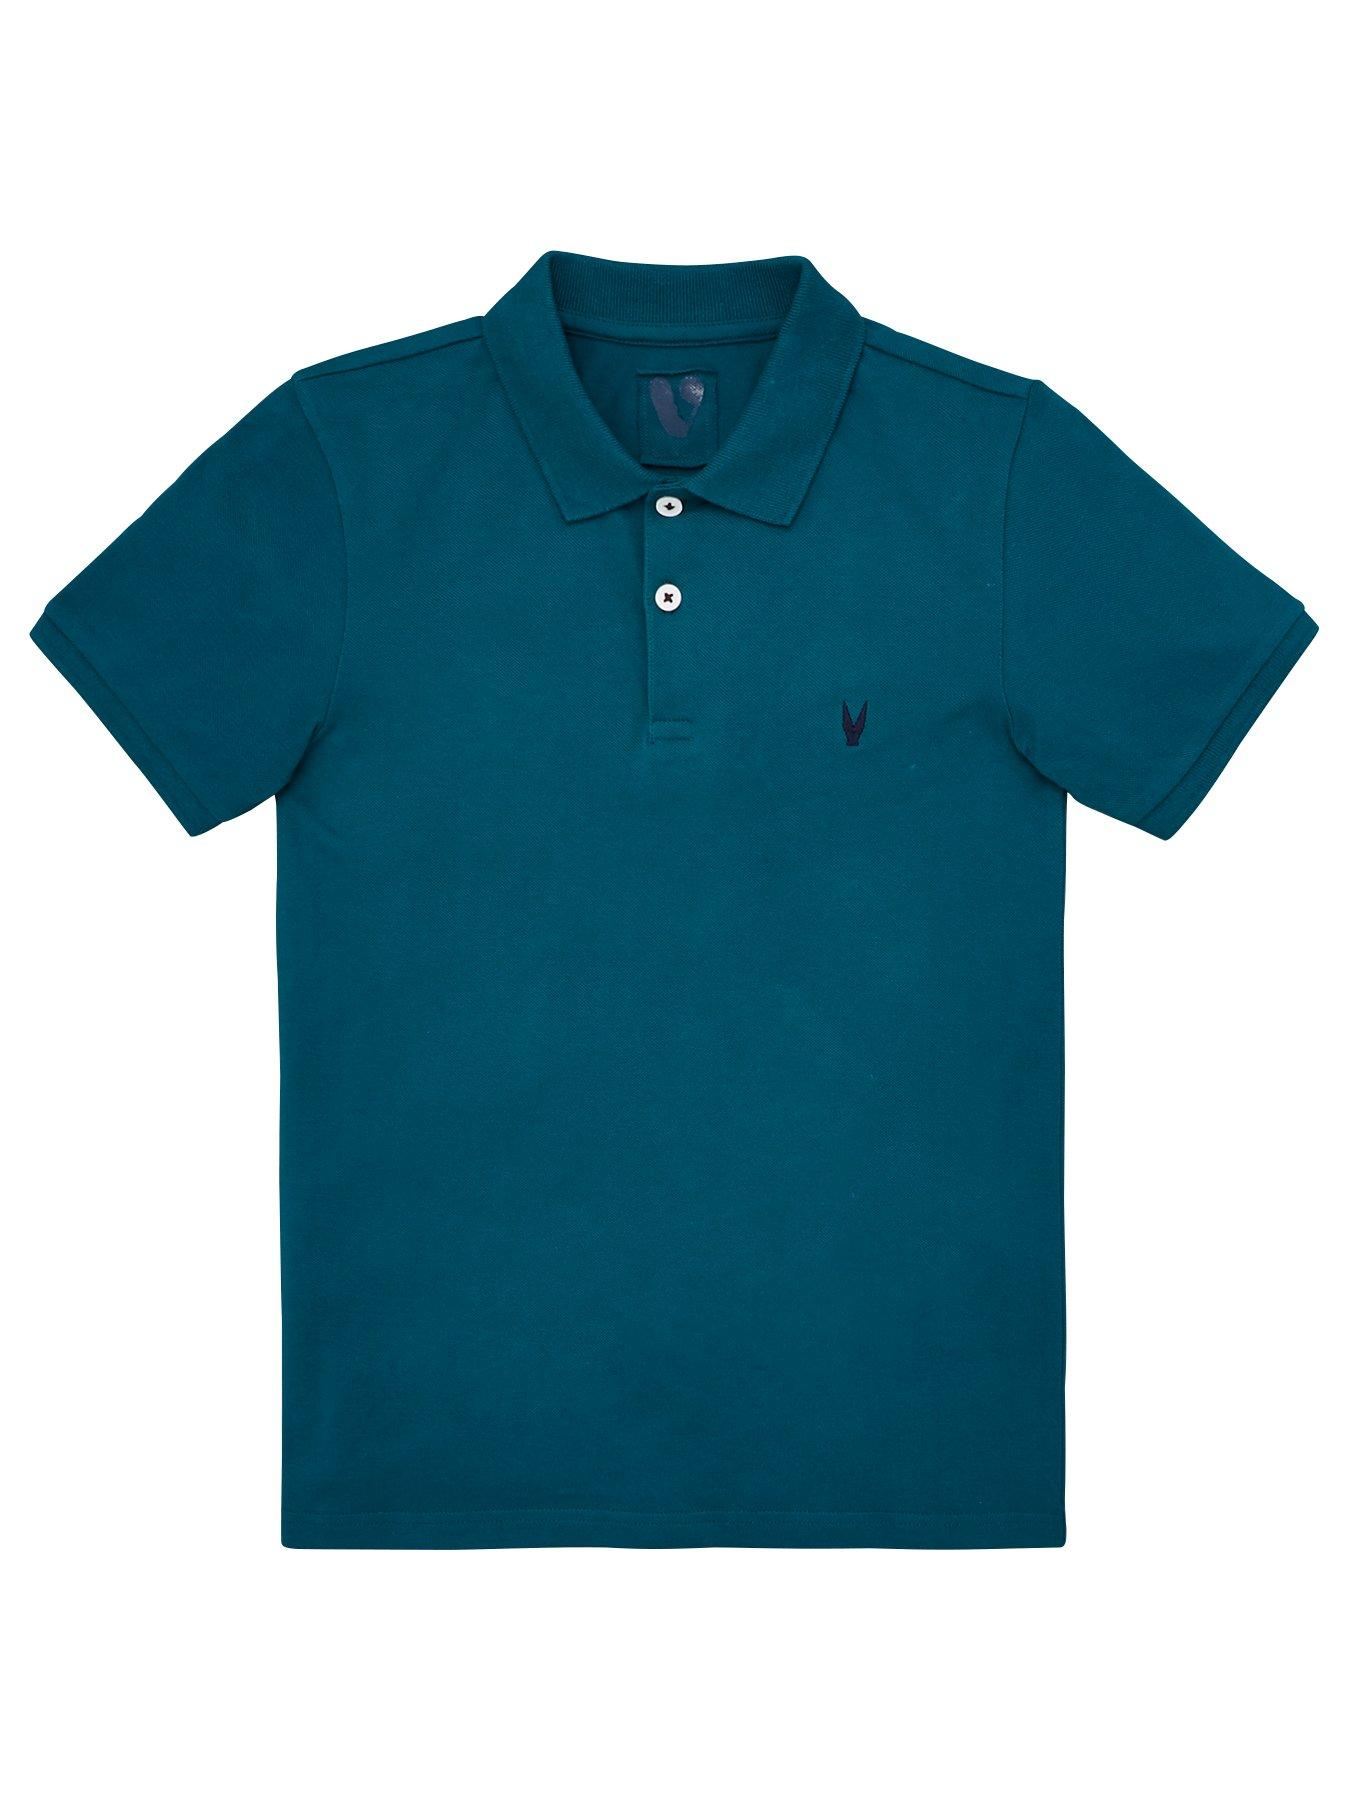 New Boys Short Sleeve Polo T Shirts Striped Tops Age 18 months to 14 years